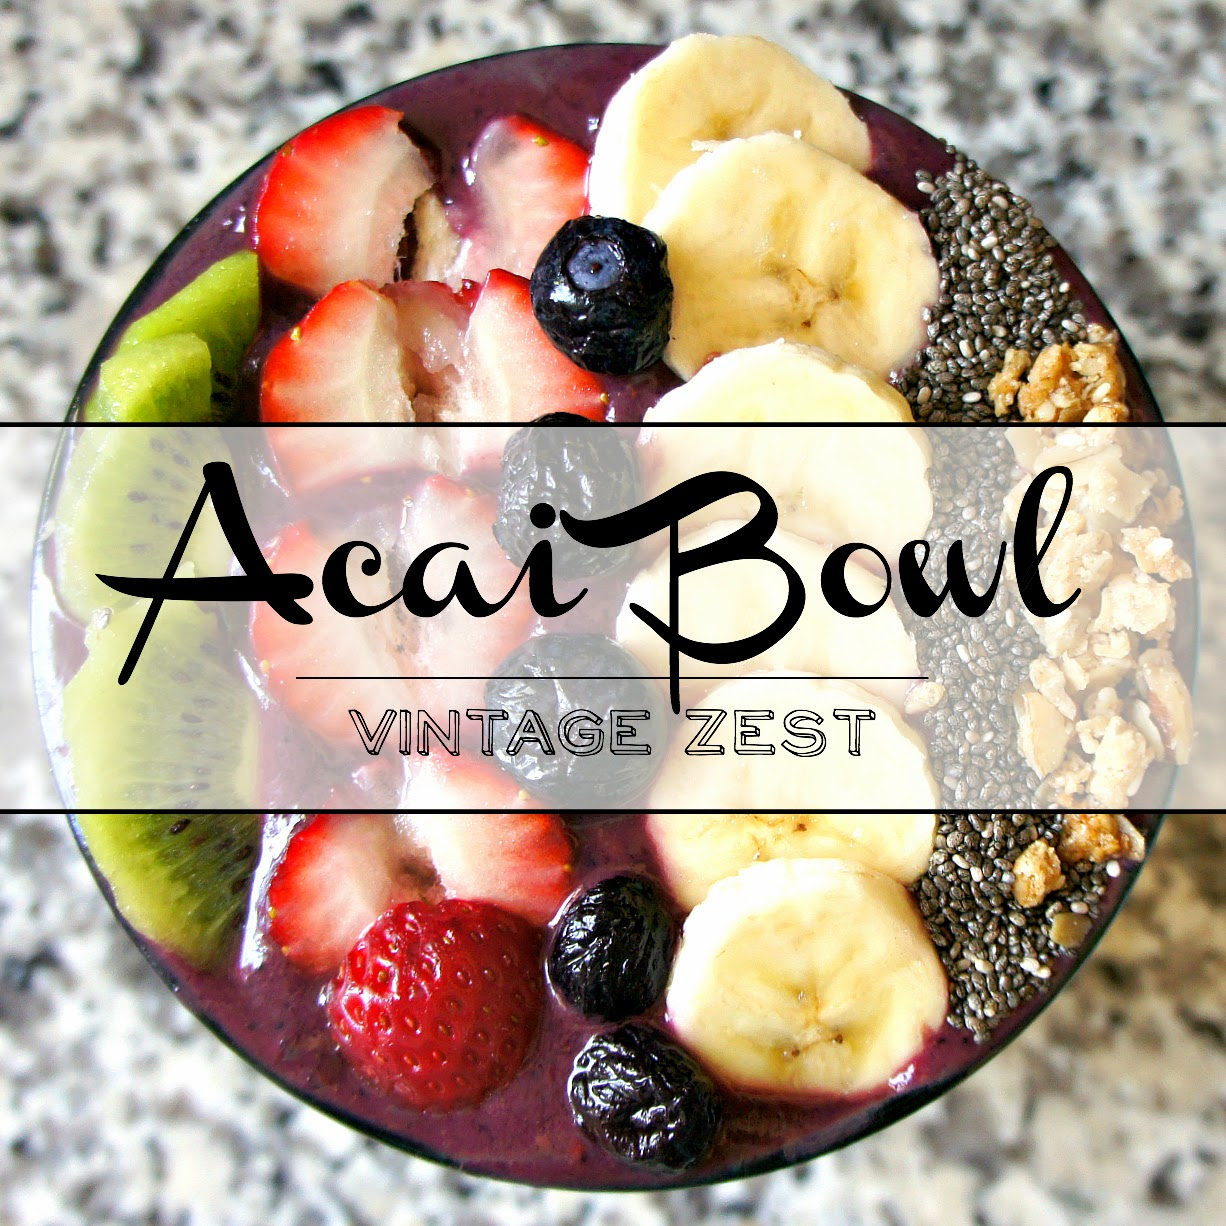 Acai Bowl Recipe & Tips on Diane's Vintage Zest!